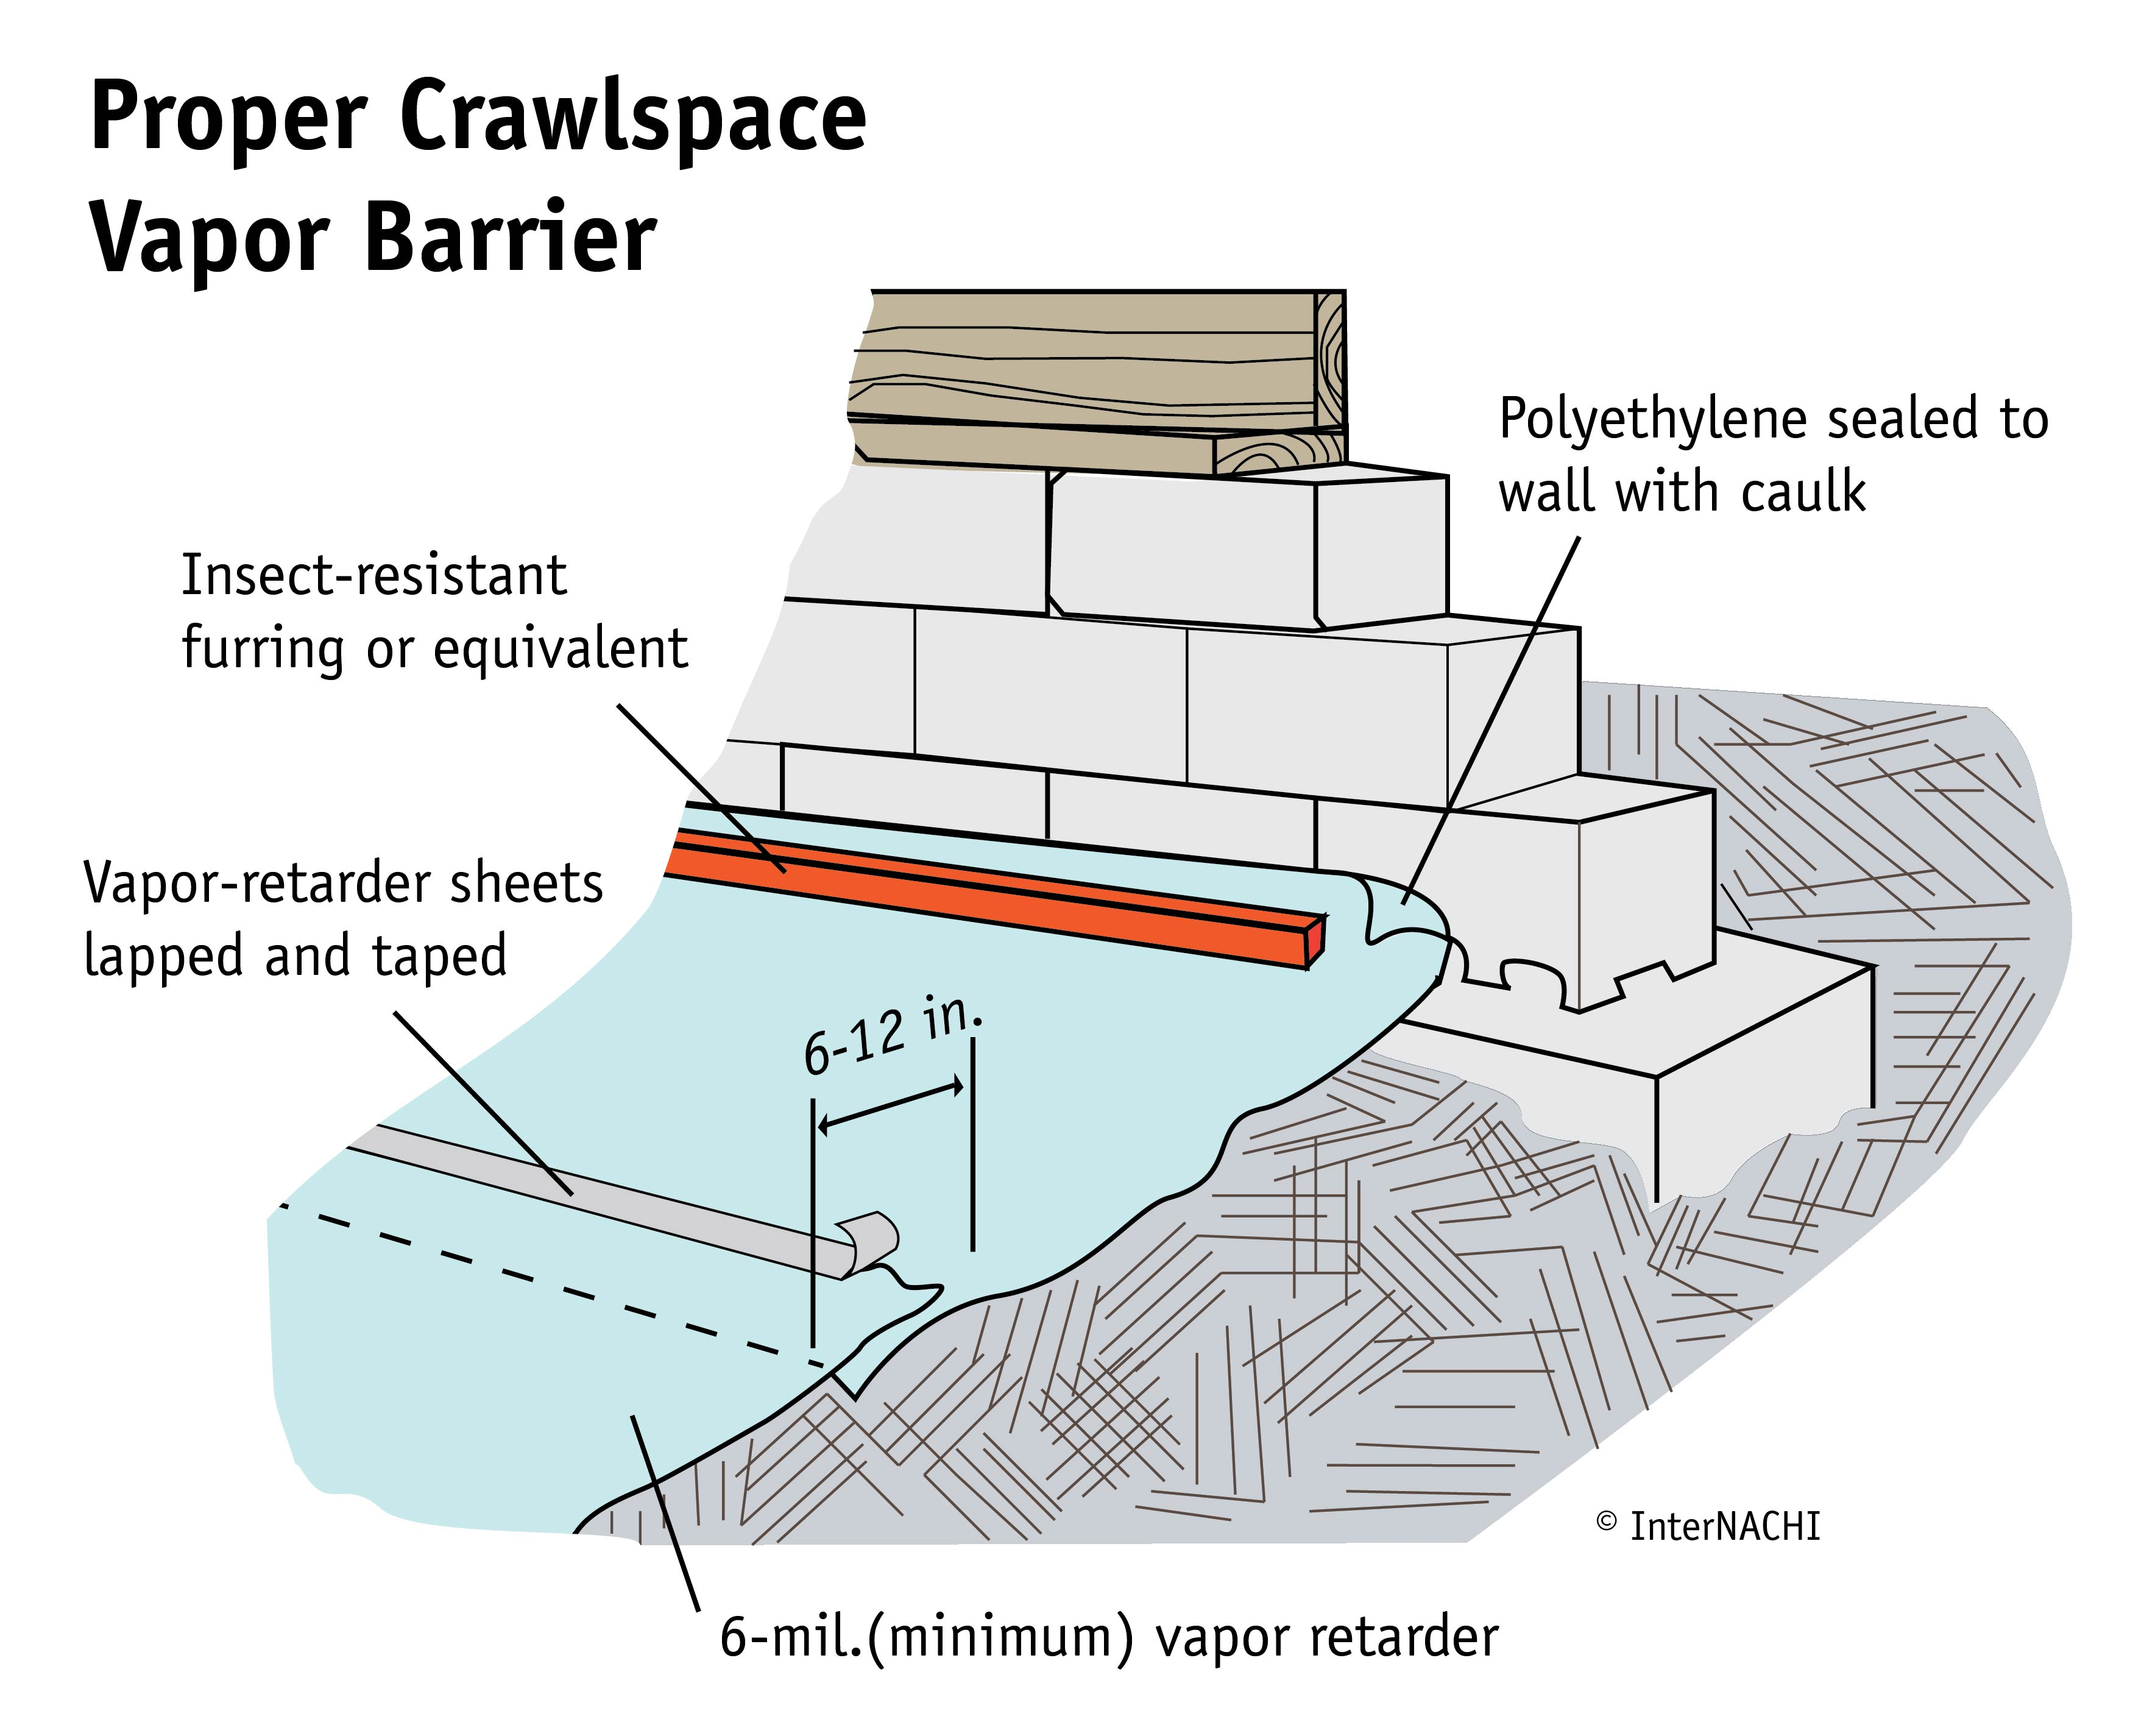 All exposed ground areas in crawlspaces should be covered with a minimum 6-mil layer of polyethylene sheeting (plastic vapor retarder sheet) to cover the exposed ground dirt floor.